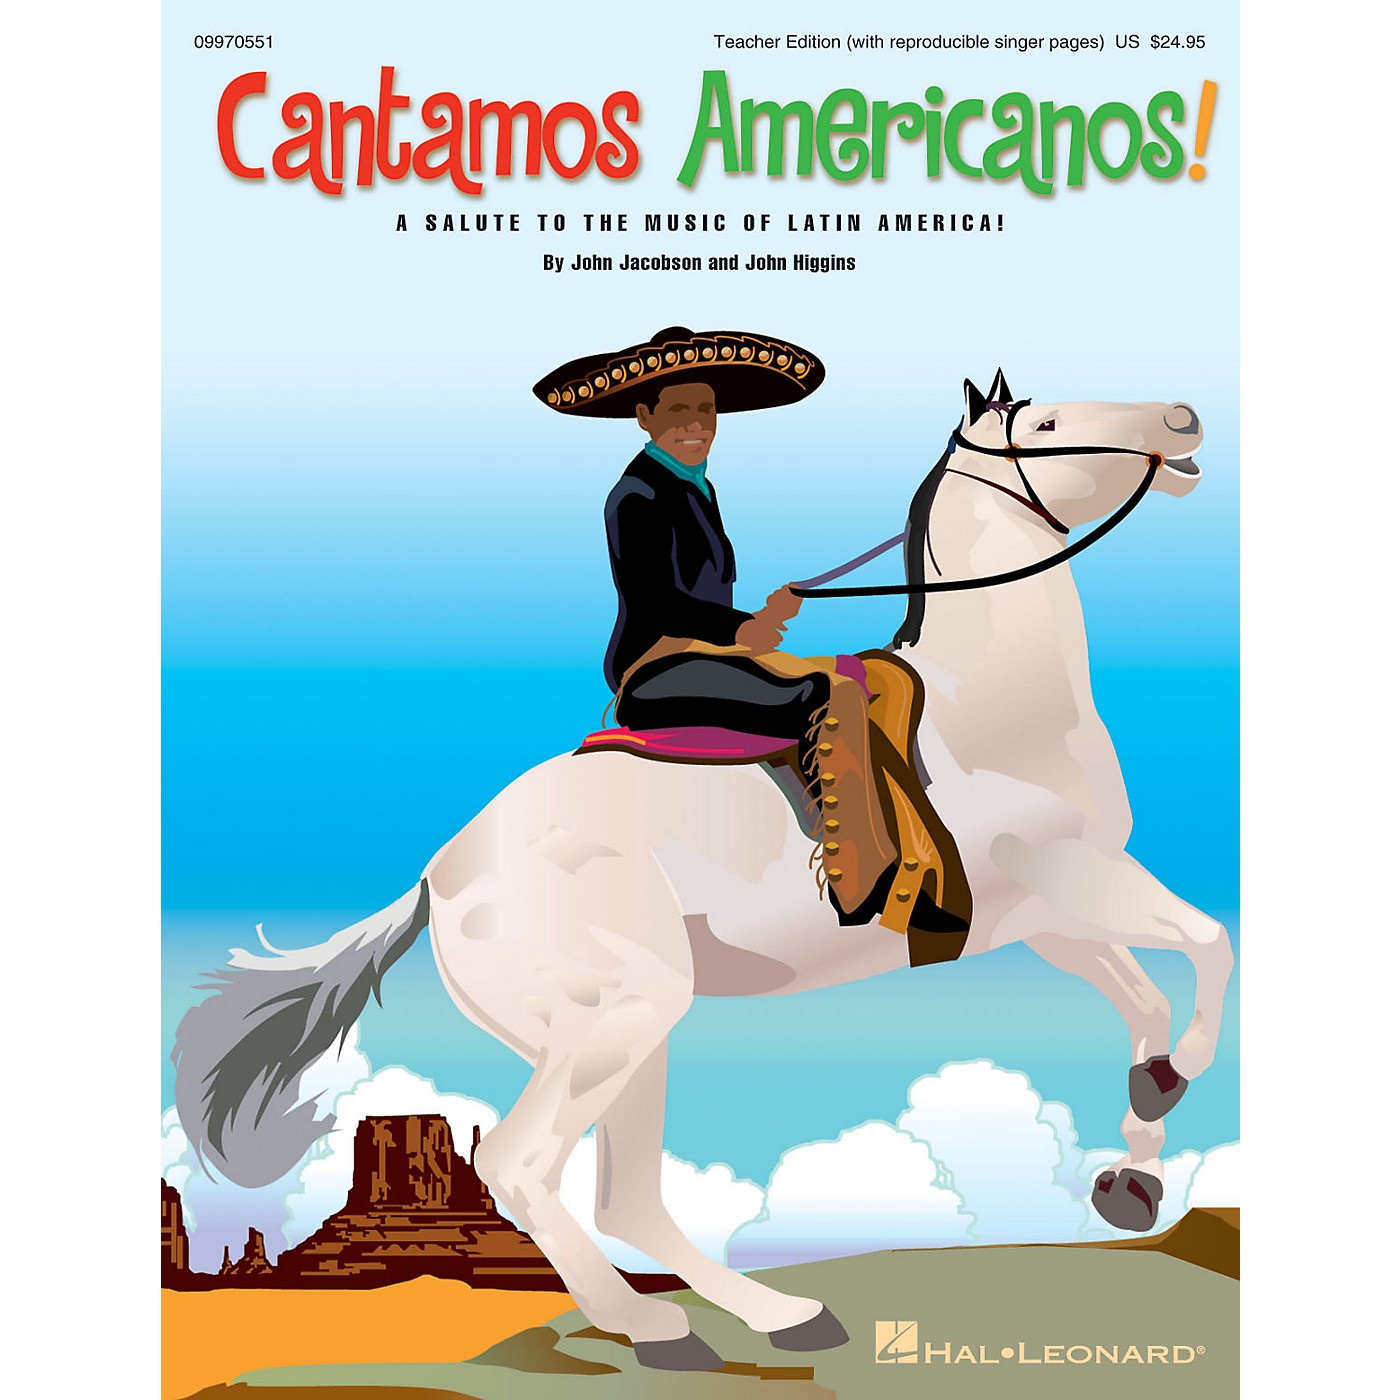 Hal Leonard Cantamos Americanos! (A Salute to the Music of Latin America) CLASSRM KIT by John Jacobson, John Higgins thumbnail